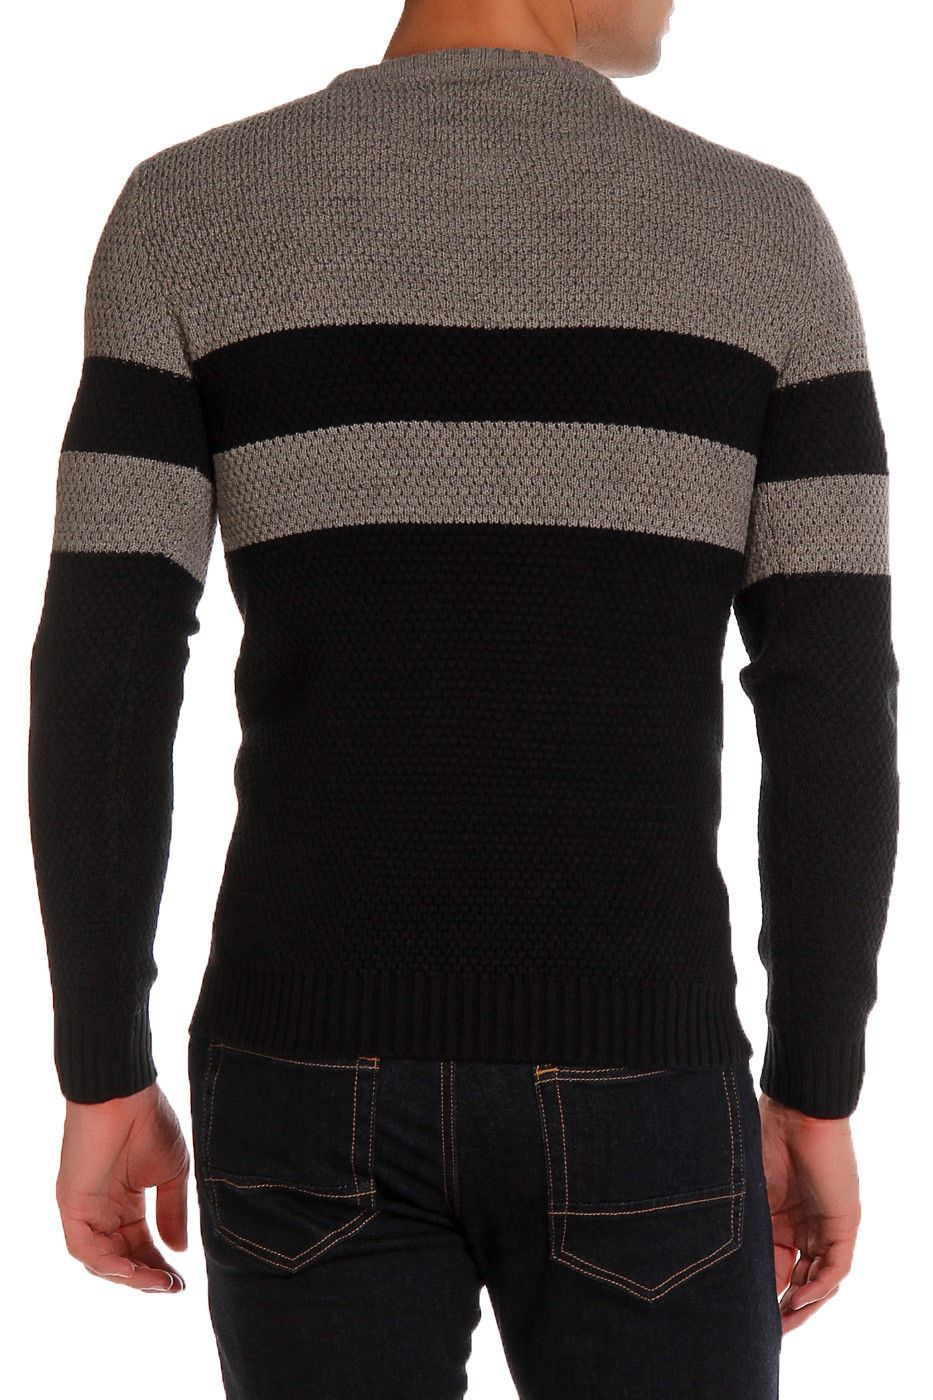 Le-Shark-Designer-Mens-Jumper-Crew-Neck-Wool-Fashion-Knitwear-Sweater thumbnail 5